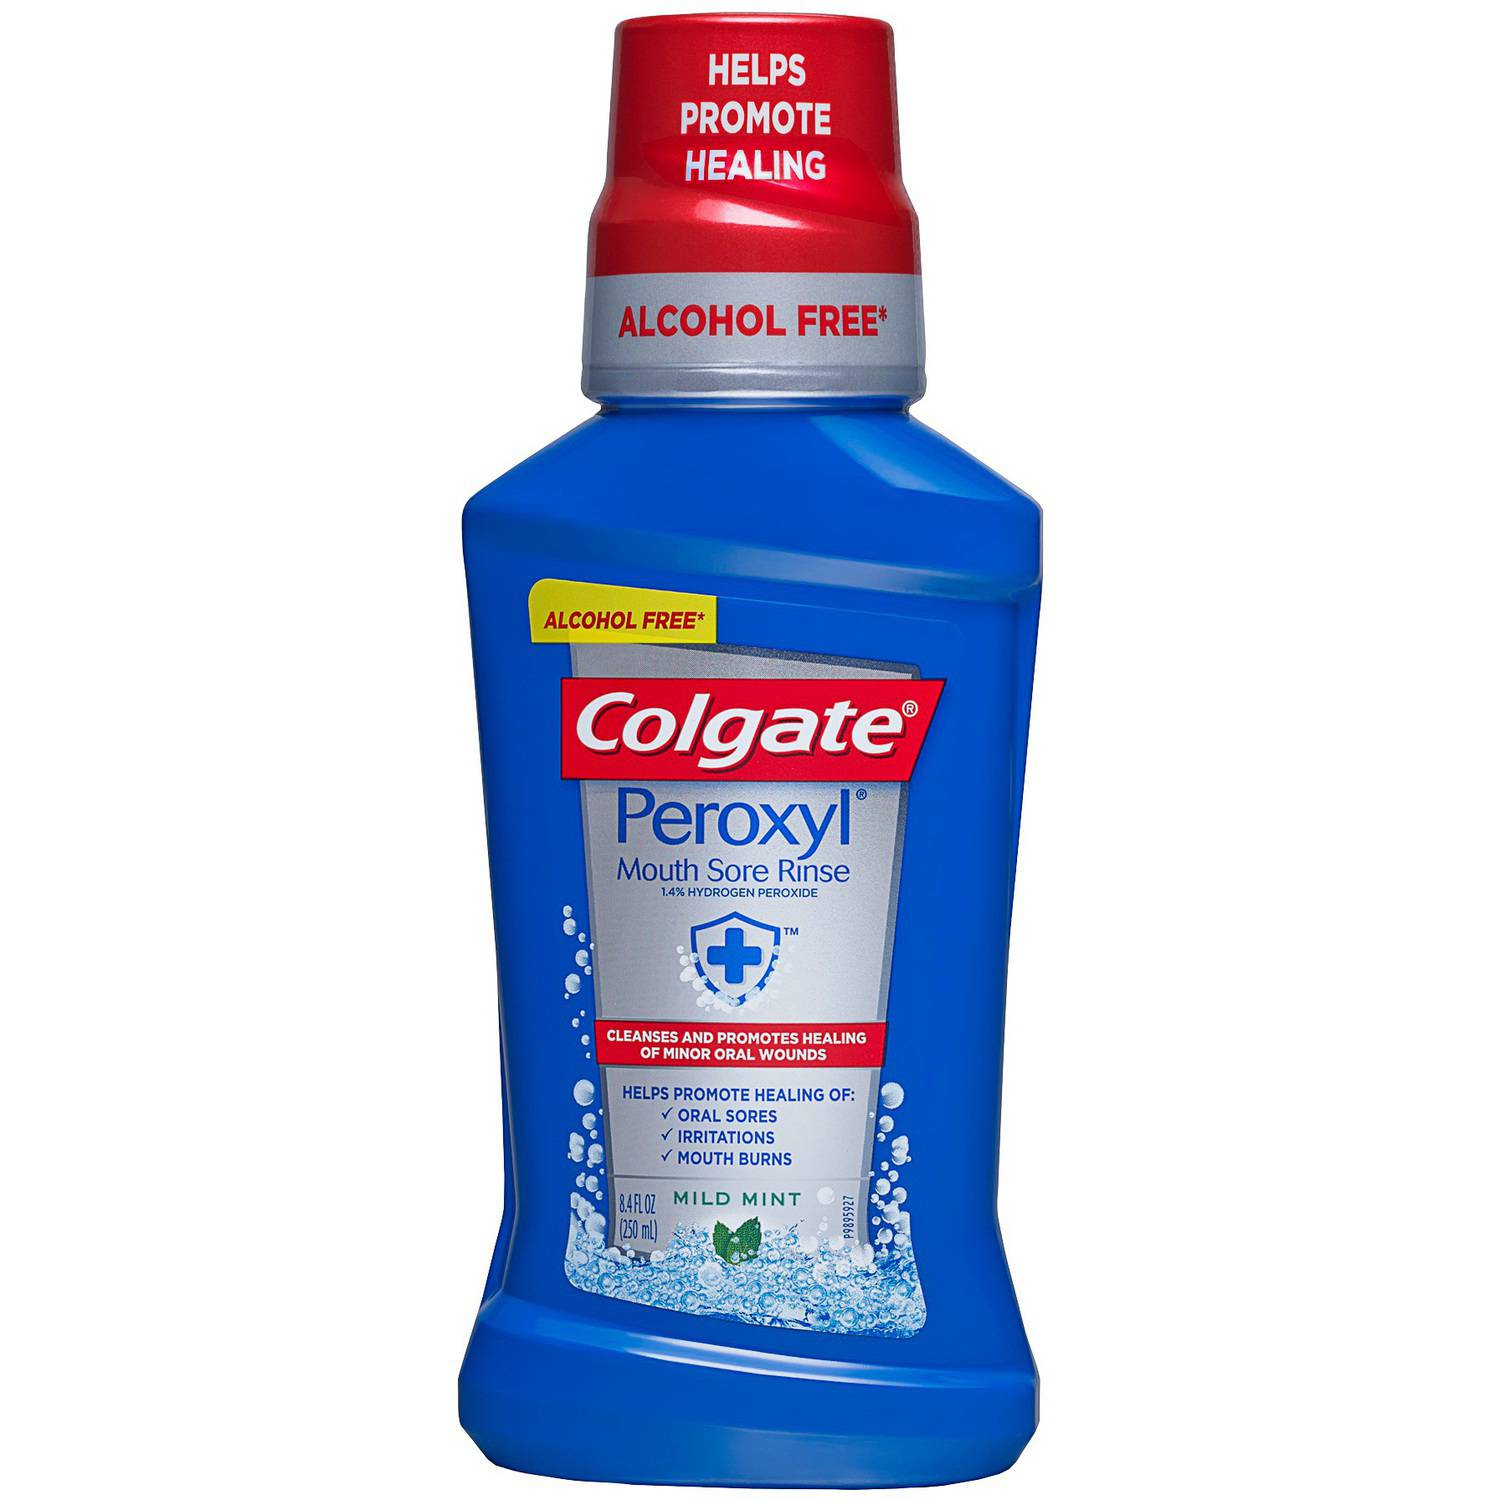 Colgate Peroxide Antiseptic Mild Mint Oral Cleanser & Rinse, 8 oz